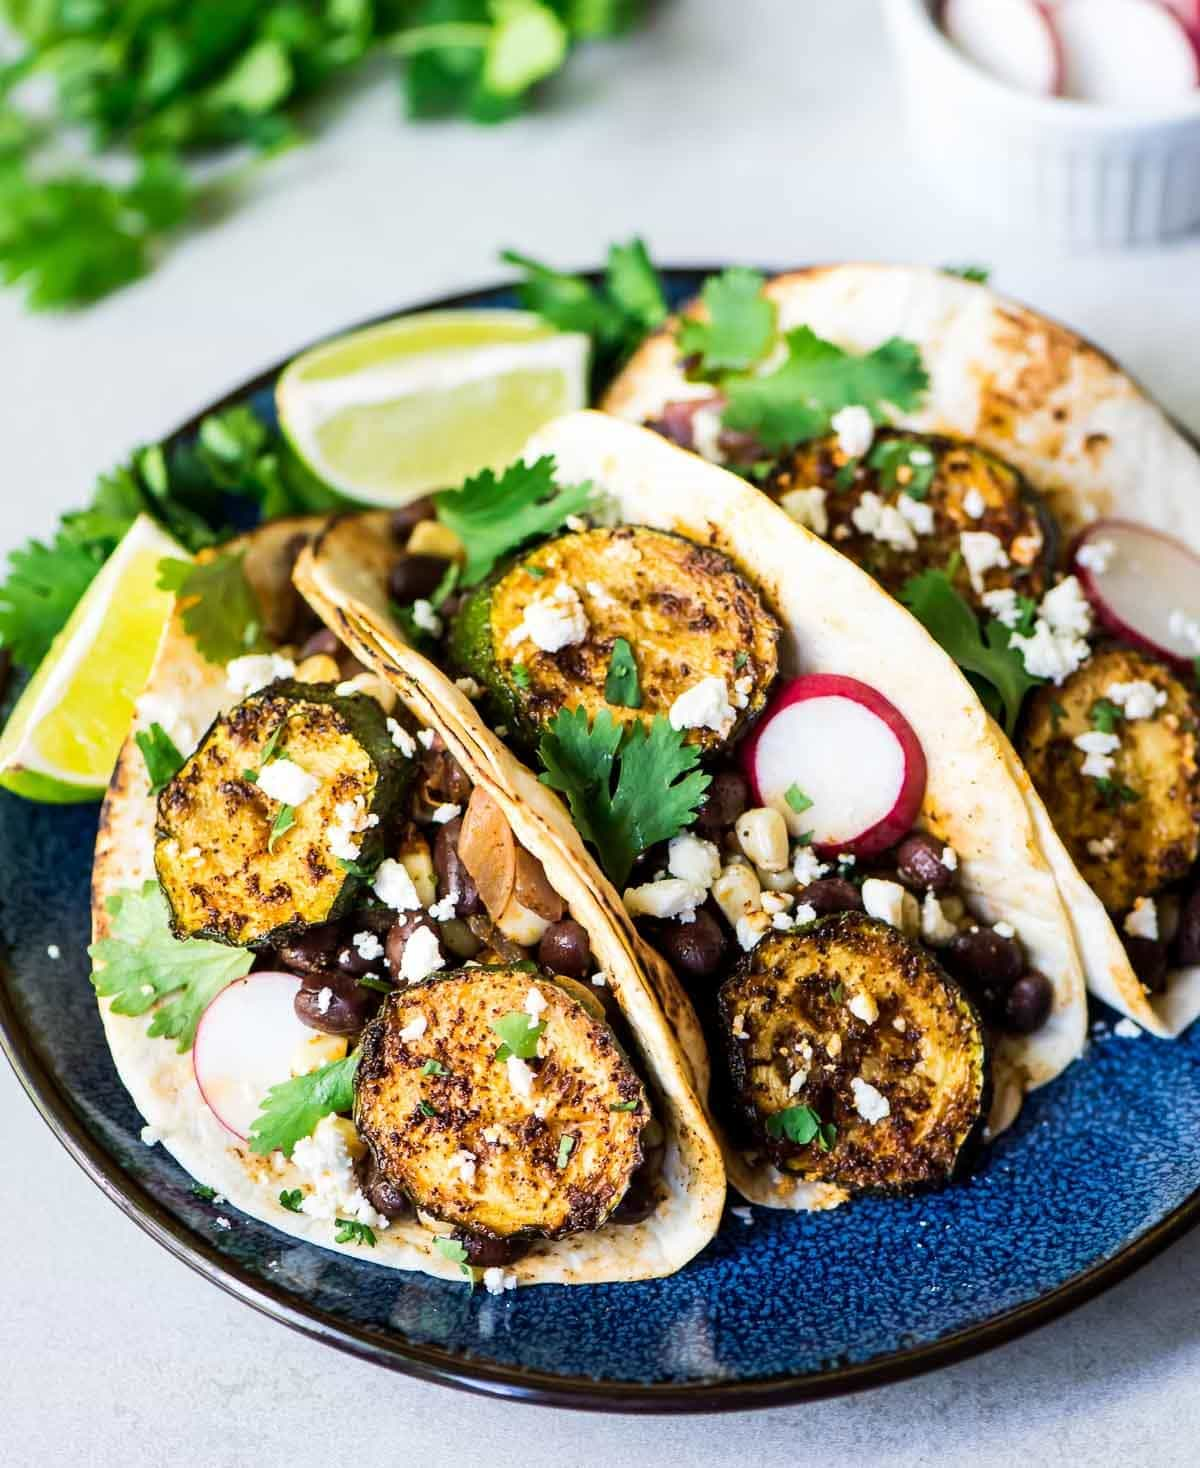 Blackened Zucchini Tacos with Sweet Corn and Black Beans — Easy, healthy and SO DELICIOUS! Even meat lovers will love this recipe!